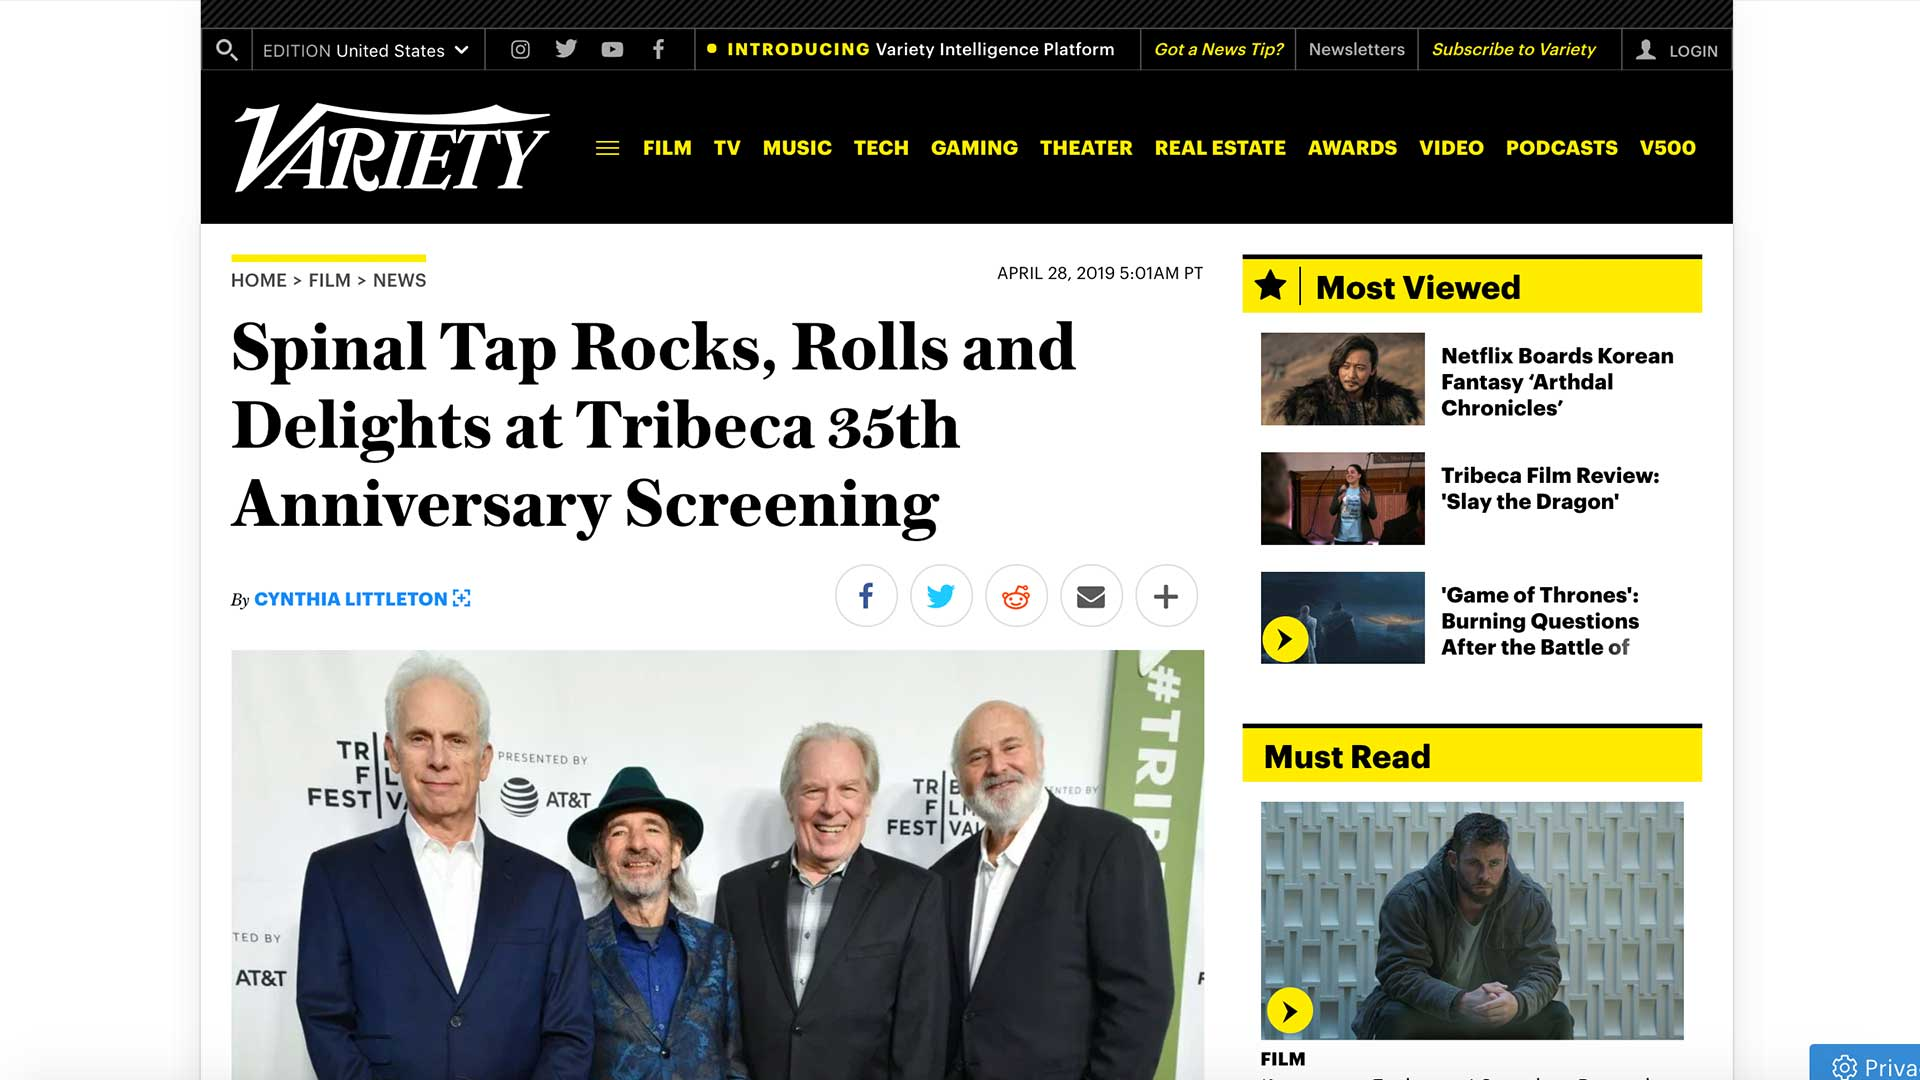 Fairness Rocks News Spinal Tap Rocks, Rolls and Delights at Tribeca 35th Anniversary Screening